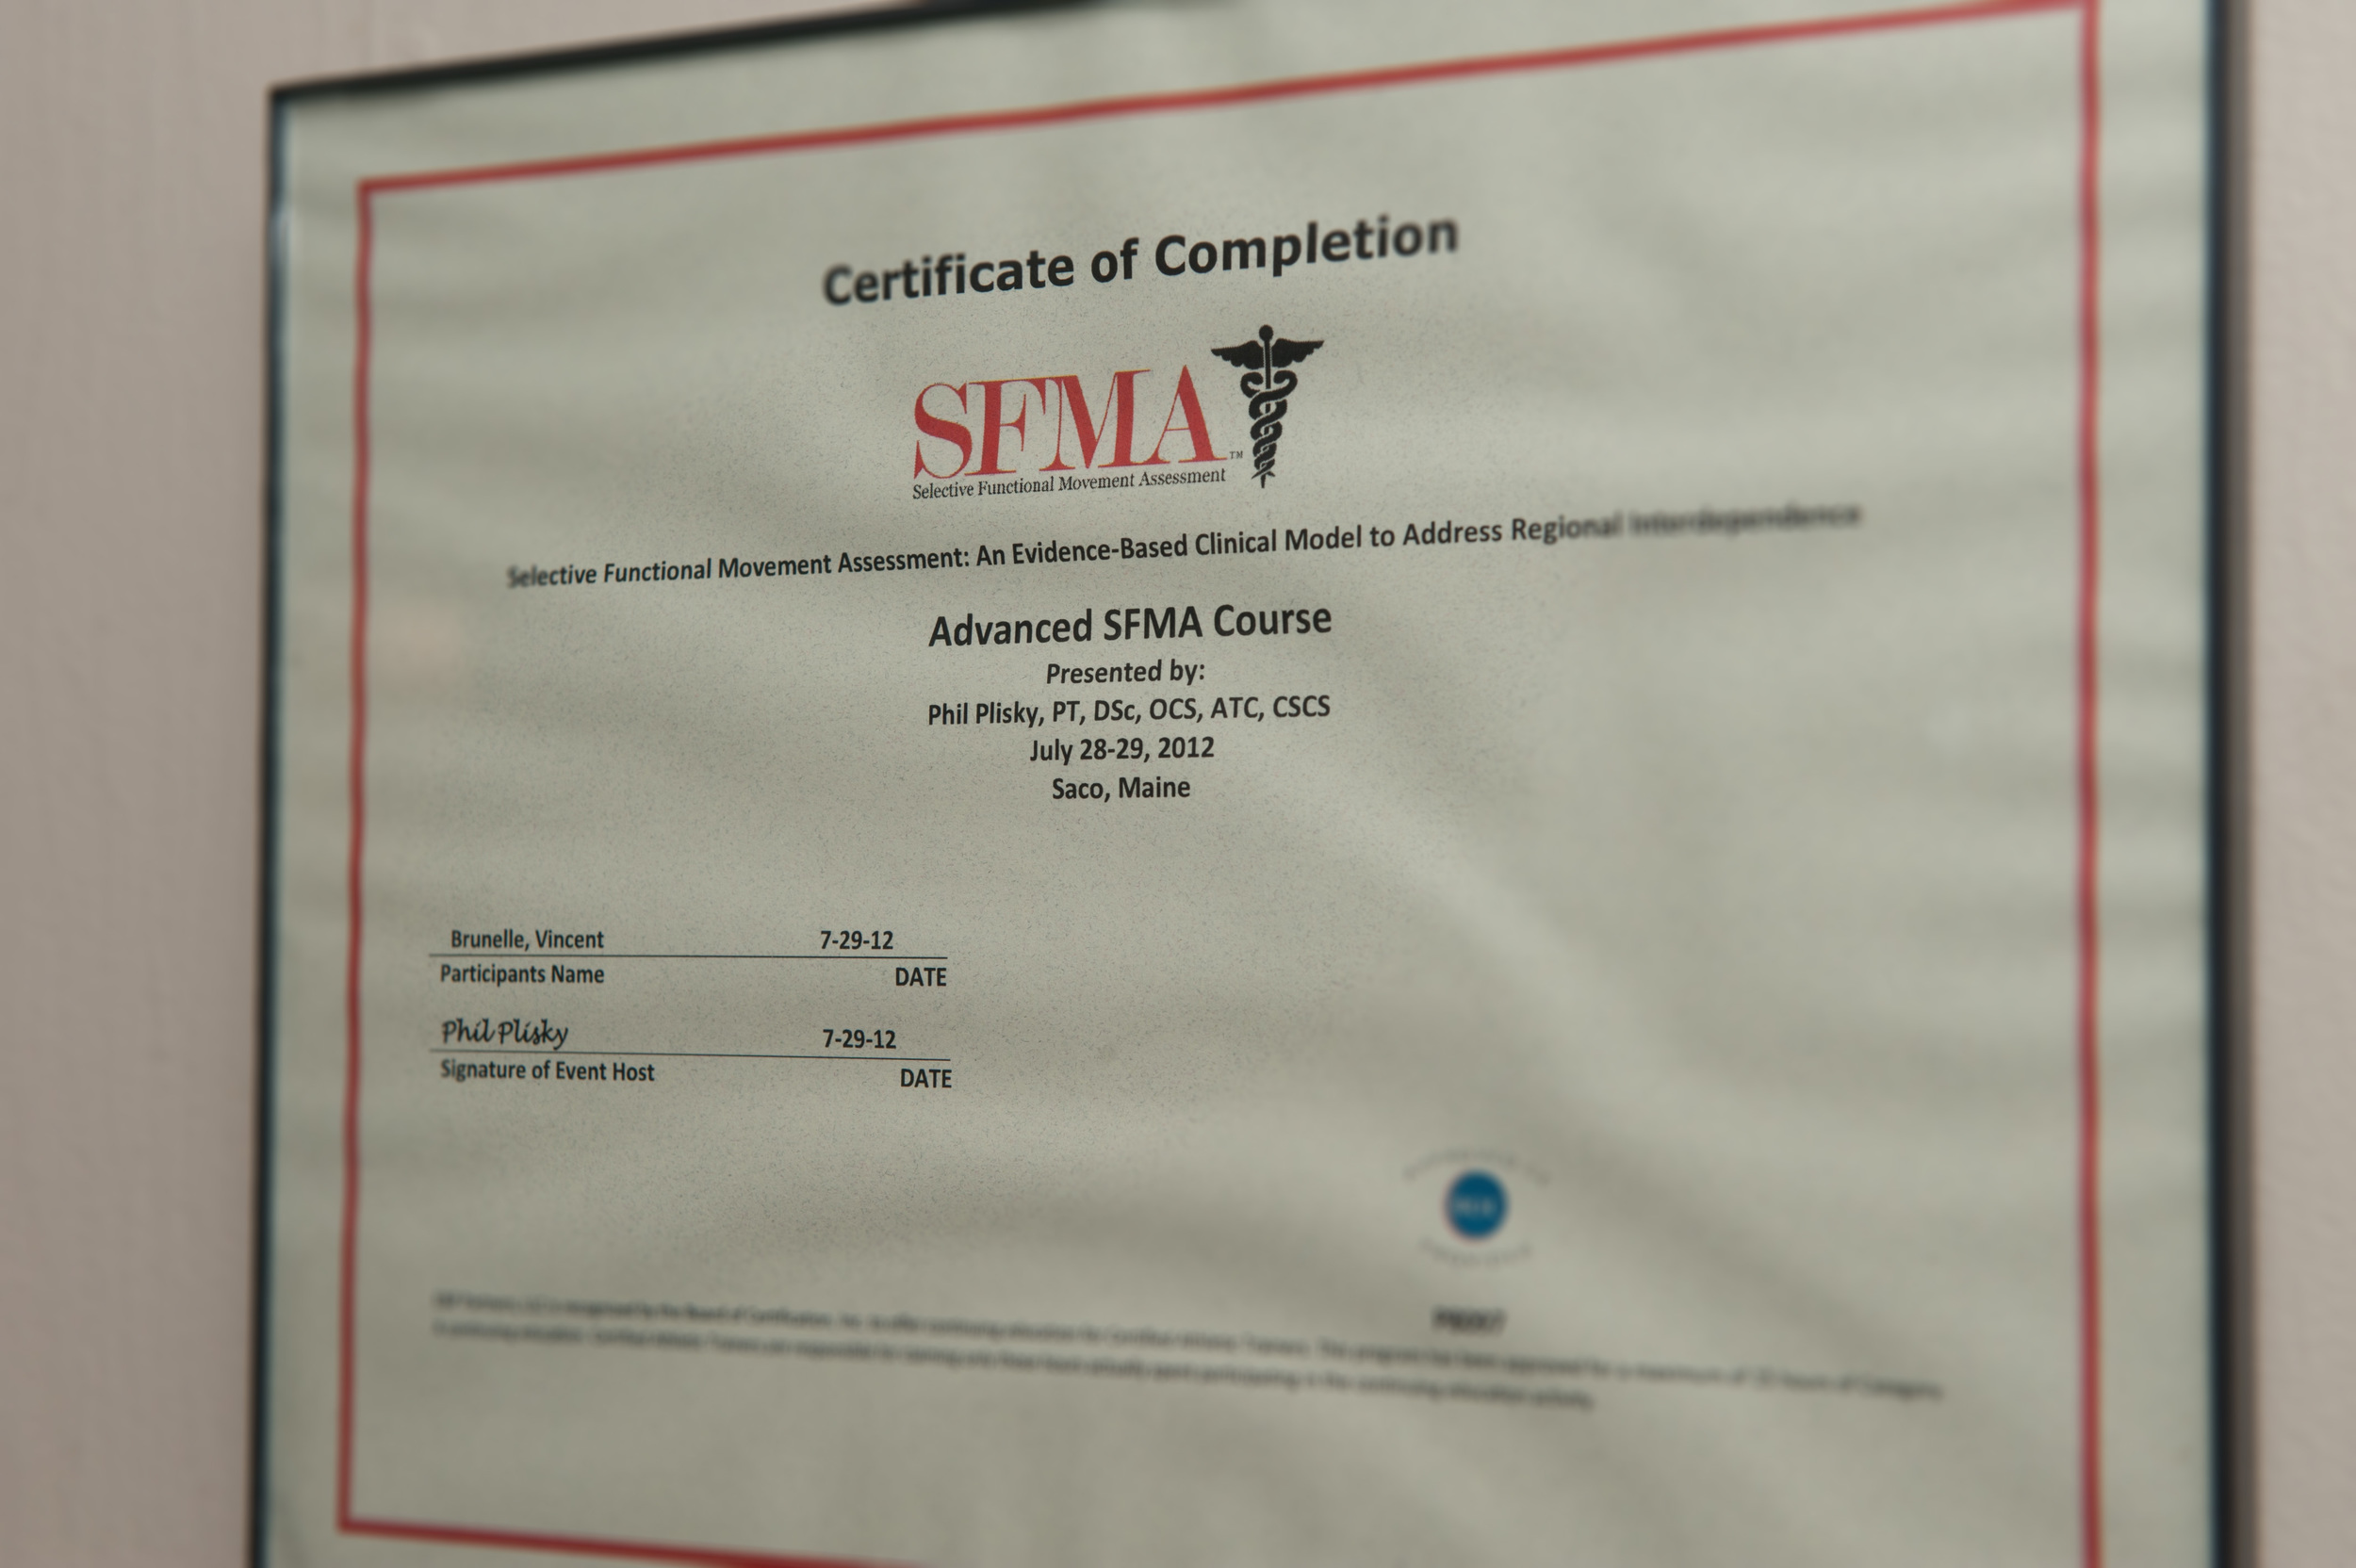 Dr. Brunelle has completed the SFMA training.